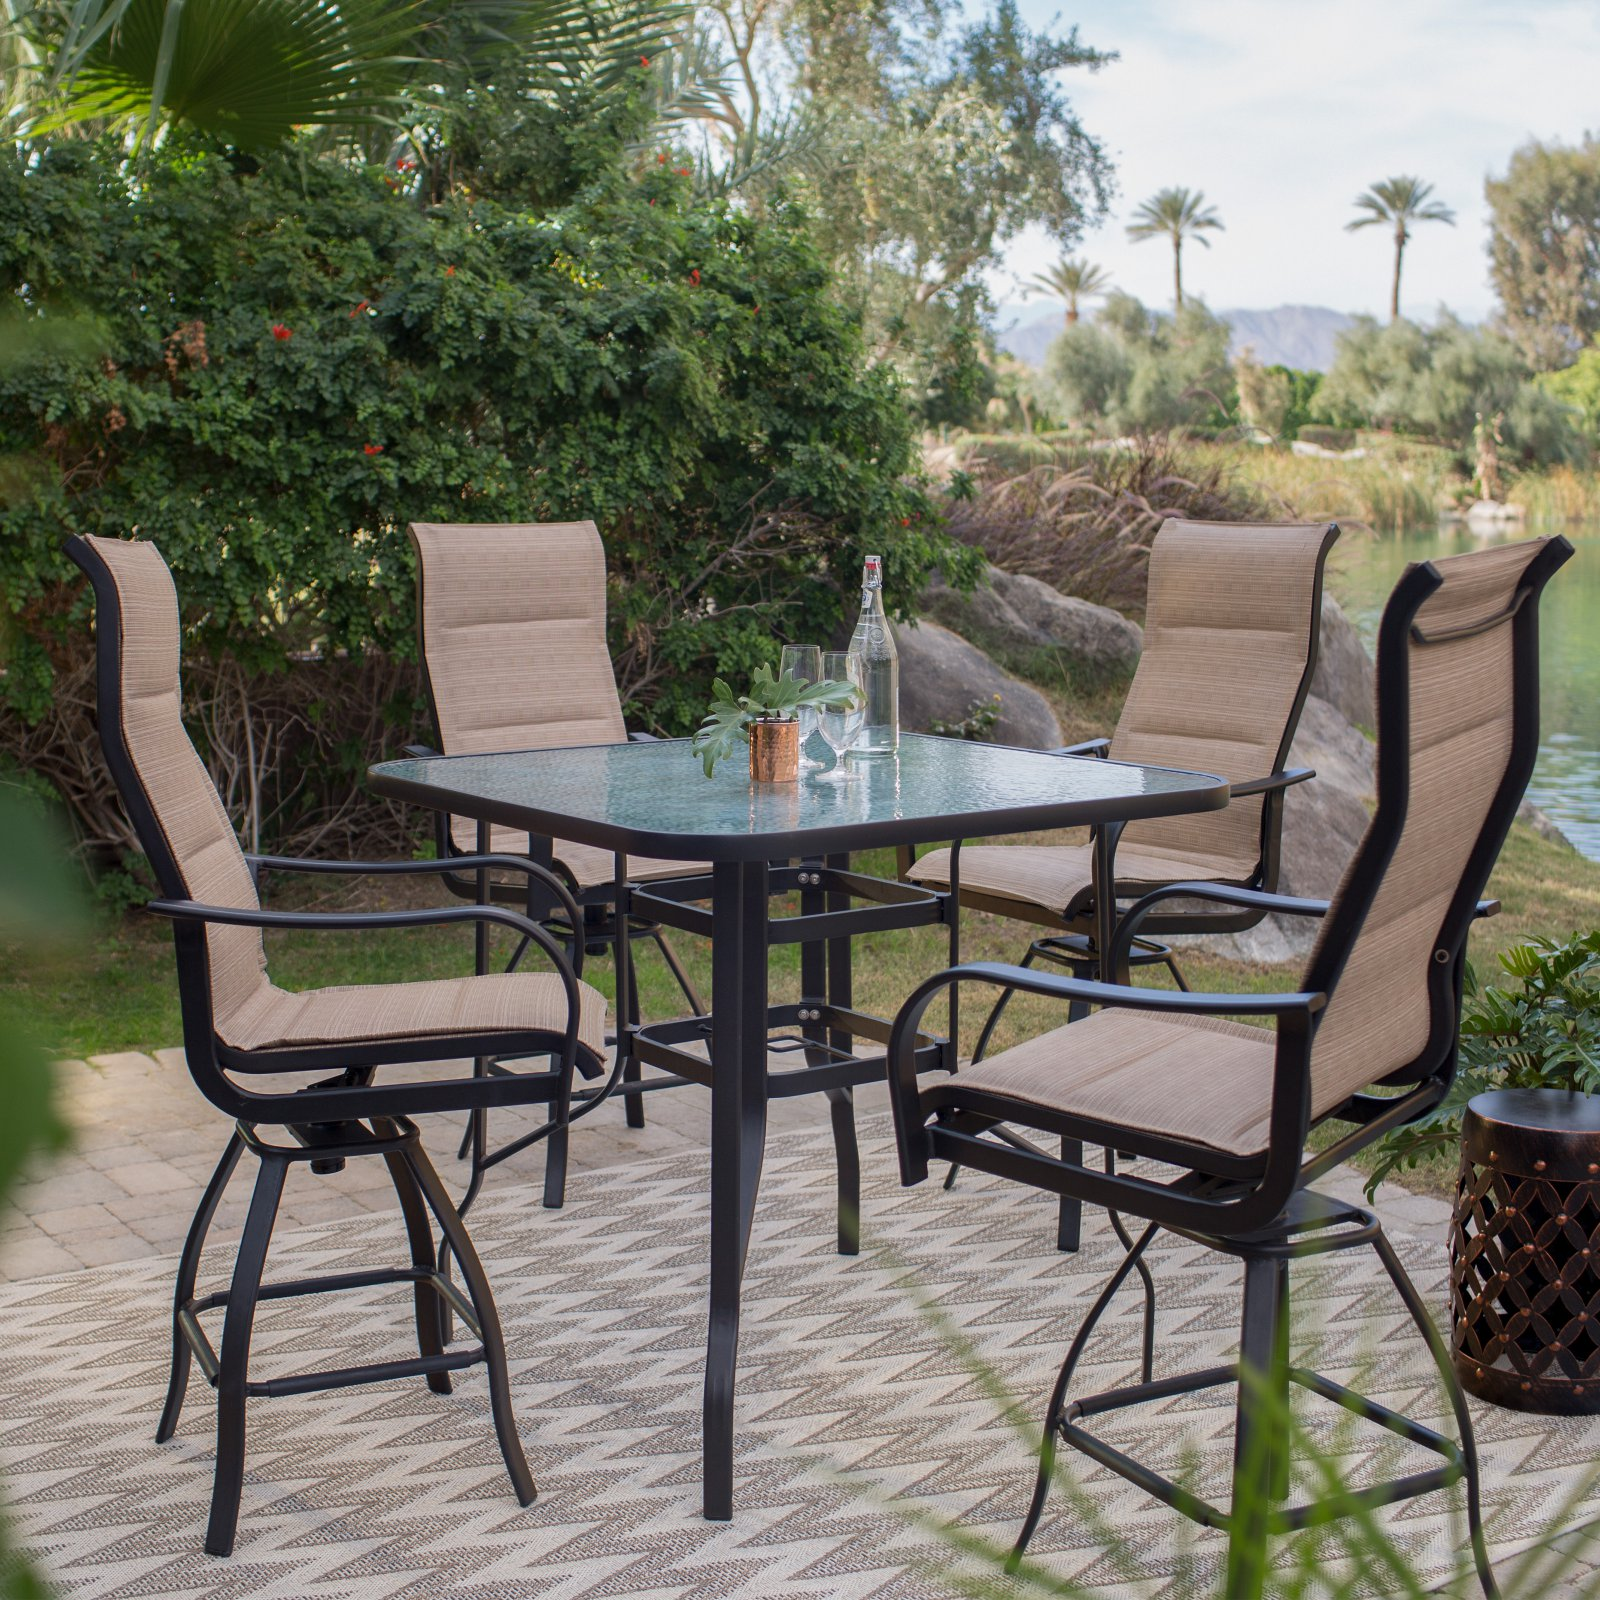 palm harbor 5 piece wicker patio dining furniture set outdoor rh fi pinterest com